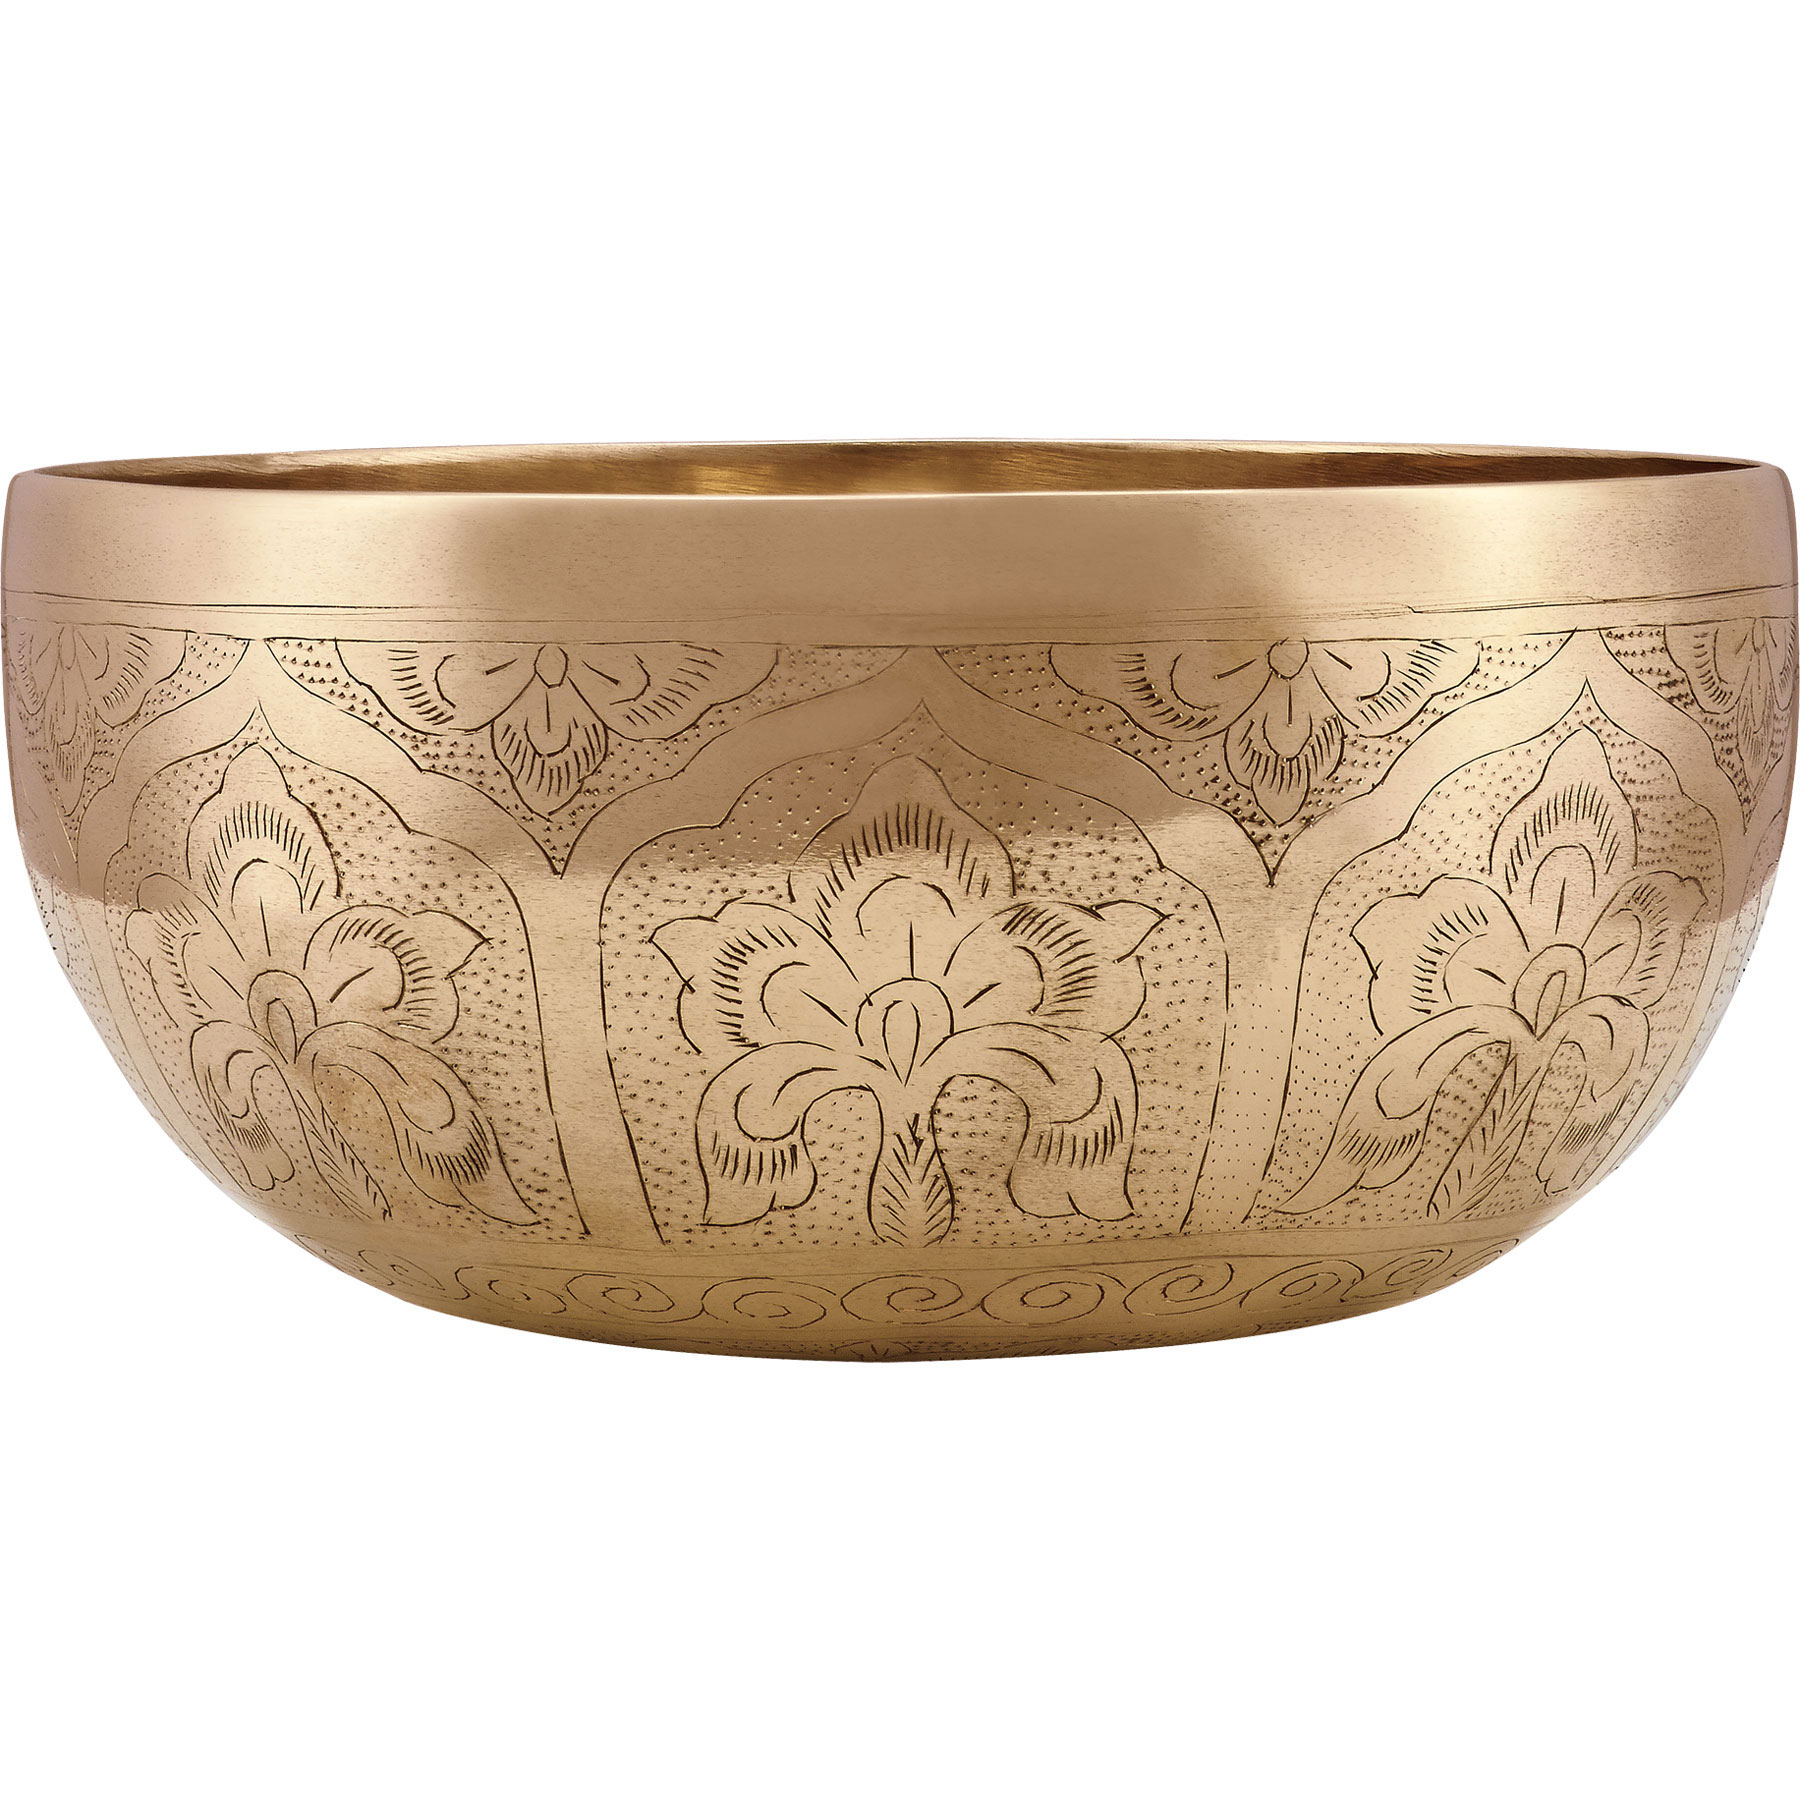 "Meinl Special Engraved Singing Bowl (8.0 - 8.3"" / 950-1050g)"